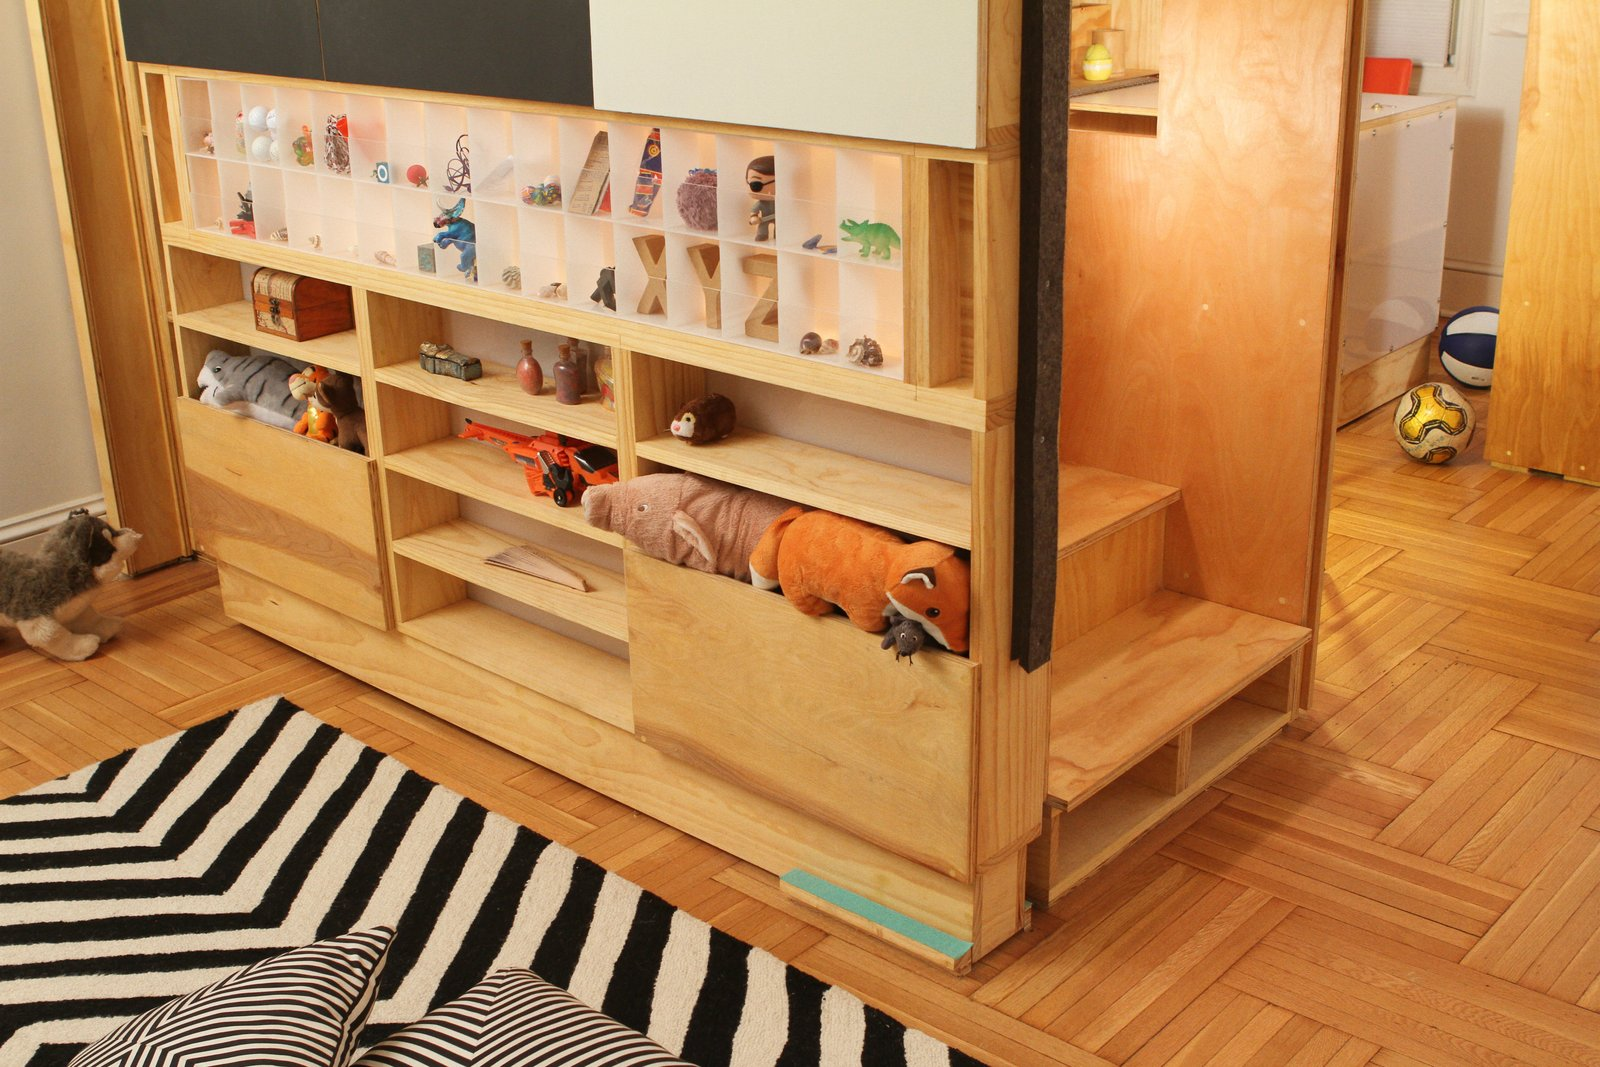 Close-up stair to sleeping loft with storage compartments, including back-lit acrylic display box Tagged: Kids, Bedroom, Playroom, Storage, Shelves, Bookcase, Medium Hardwood, Pre-Teen, Boy, and Neutral.  Best Kids Pre-Teen Medium Hardwood Photos from LO Residence Playroom/Bedroom